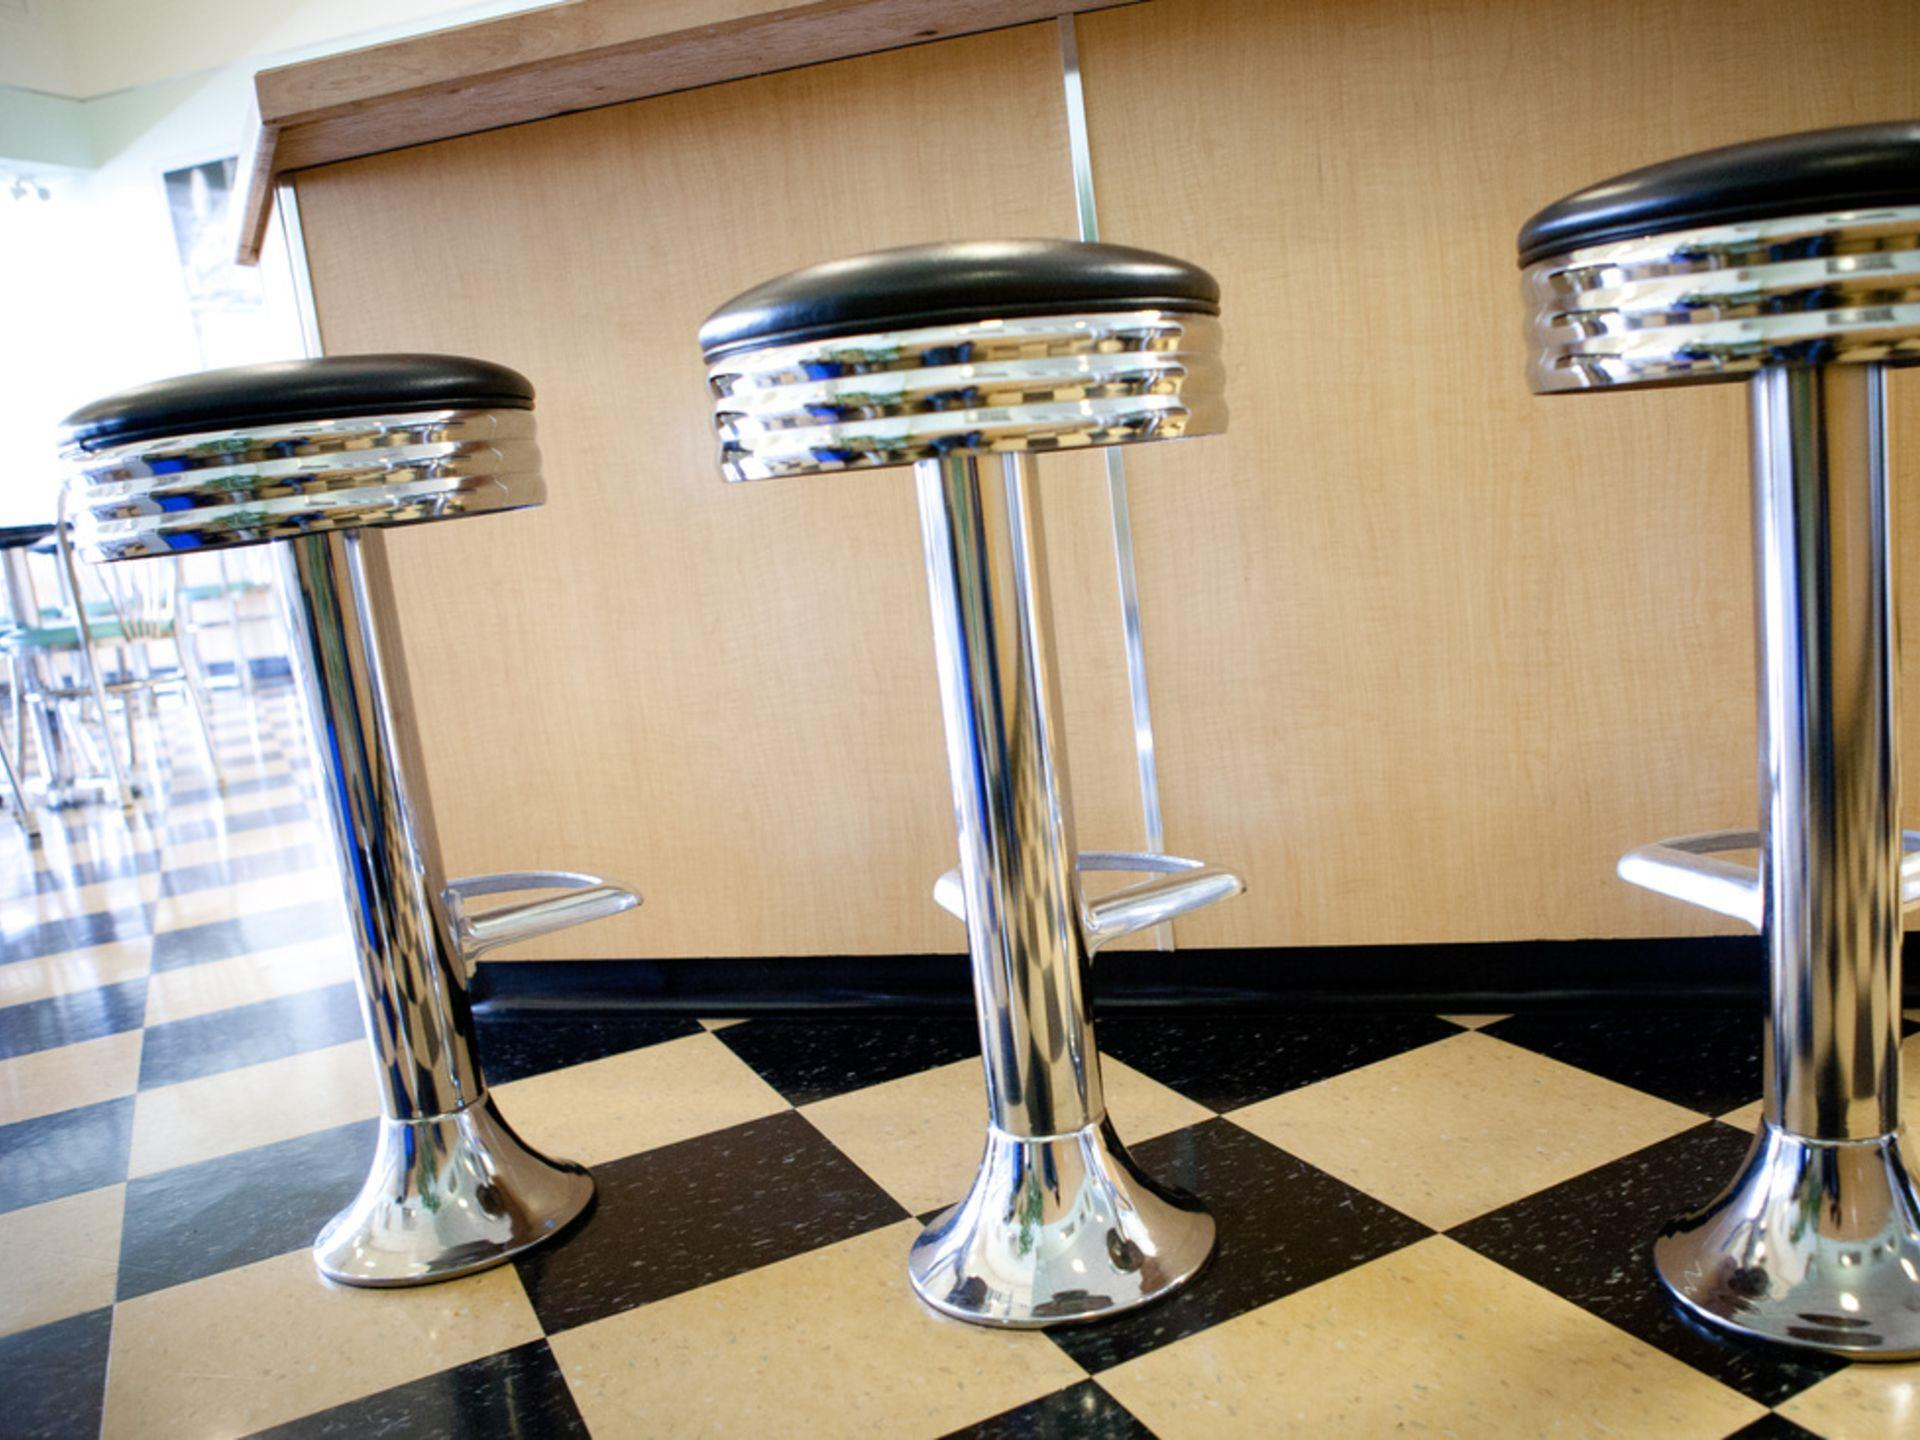 3 Metal retro-style stools at counter with checkerboard styled tiles on floor